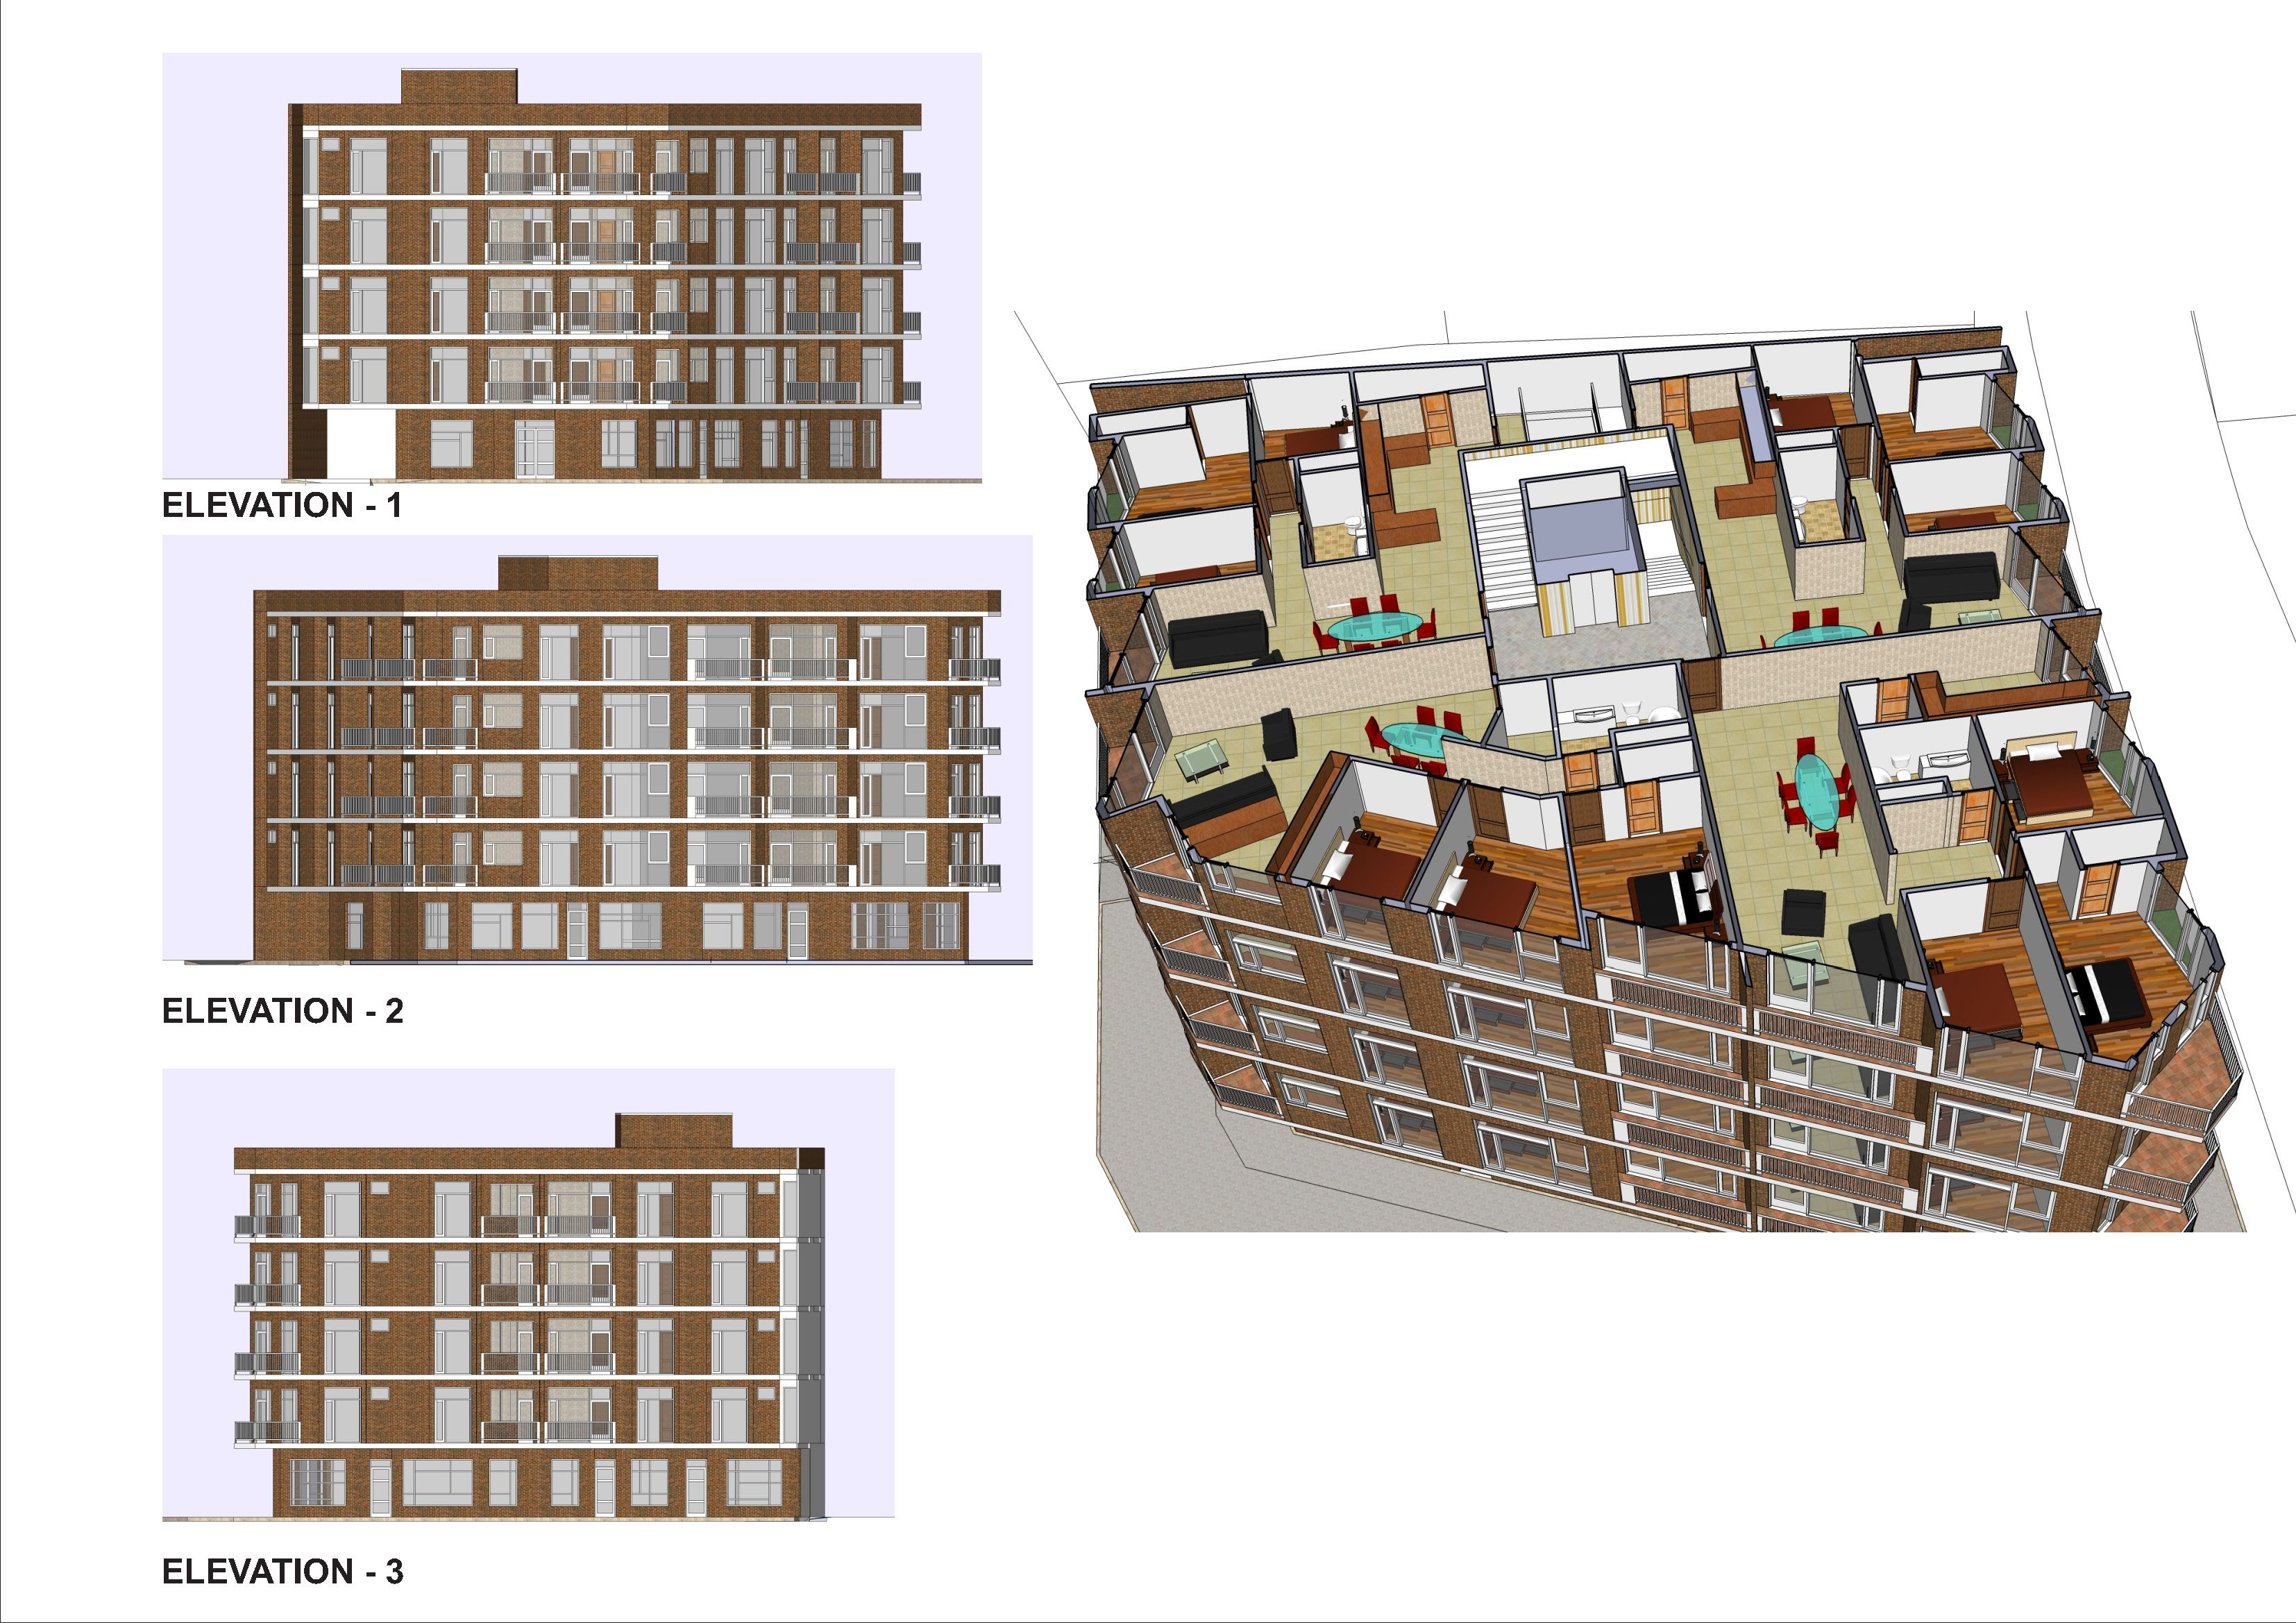 Apartment building plans location aksaray turkey new Residential building plans